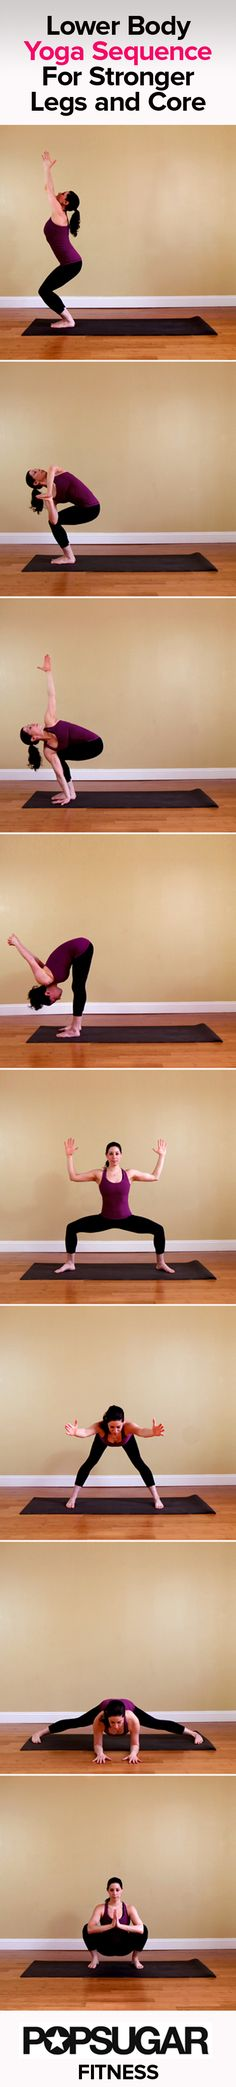 Yoga Sequence for Stronger Legs and Core. Perfect for cyclists, runners, and snow bunnies!